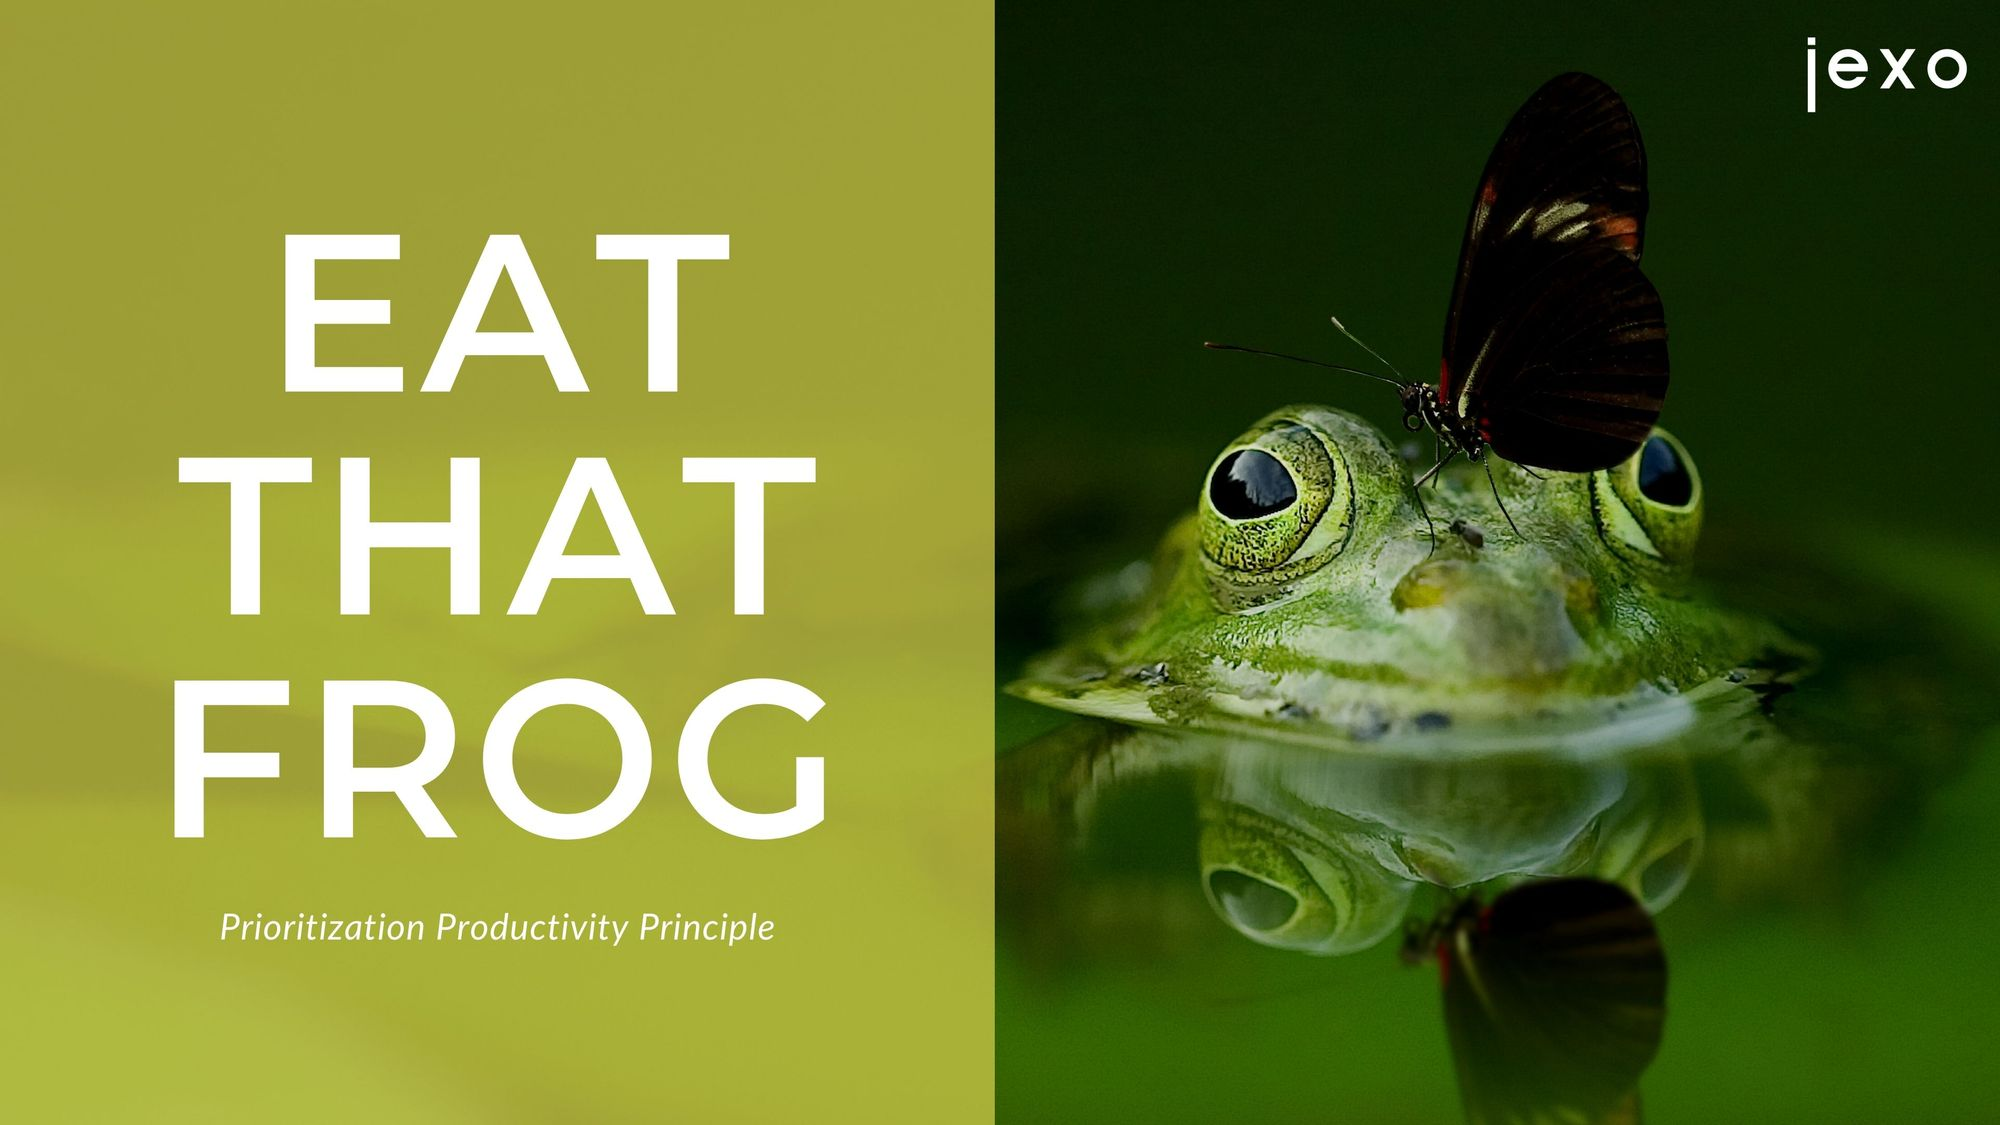 Prioritization productivity principle: eat that frog